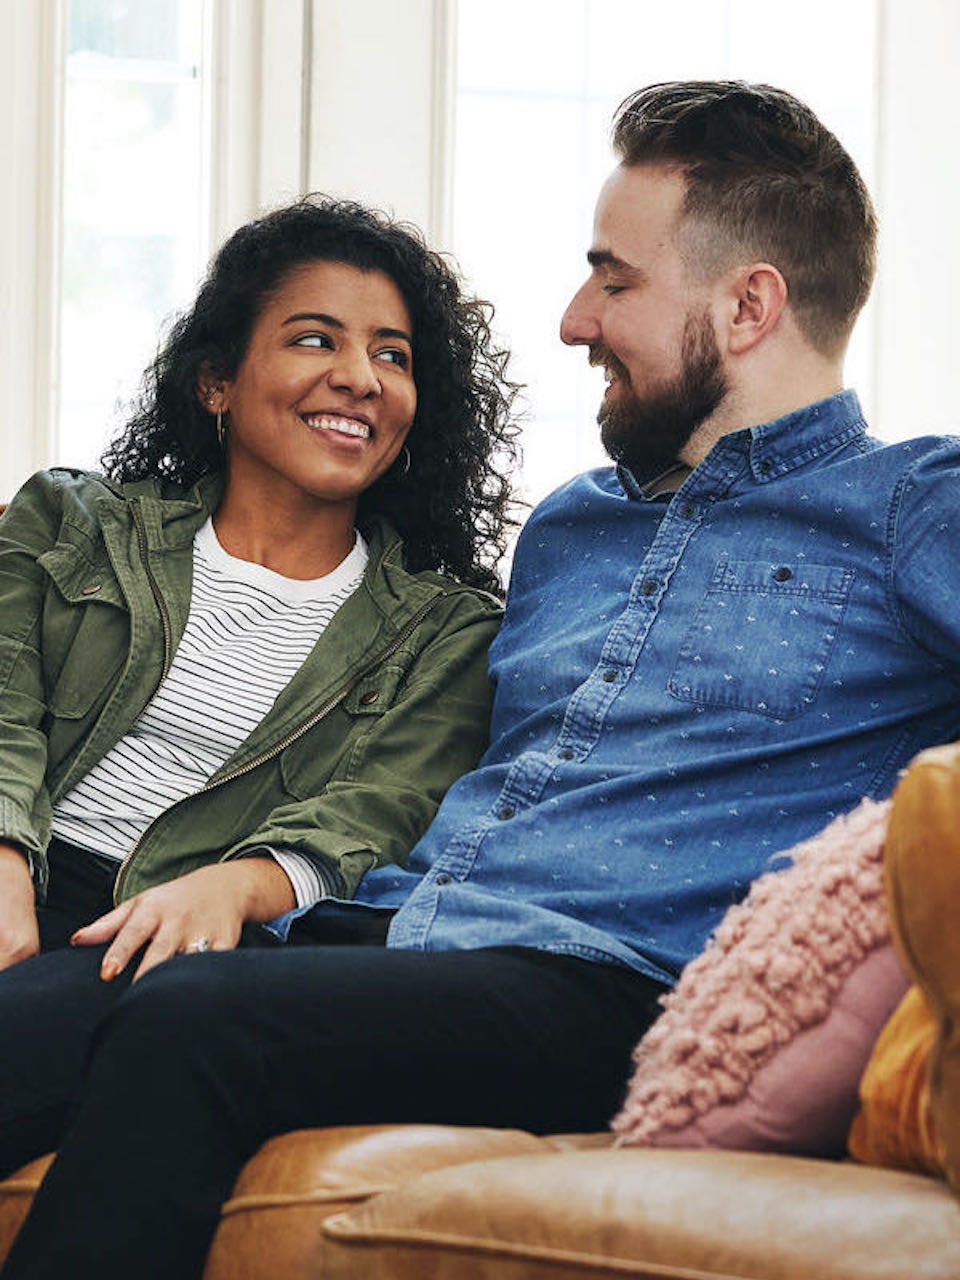 Photo of young couple laughing together in home